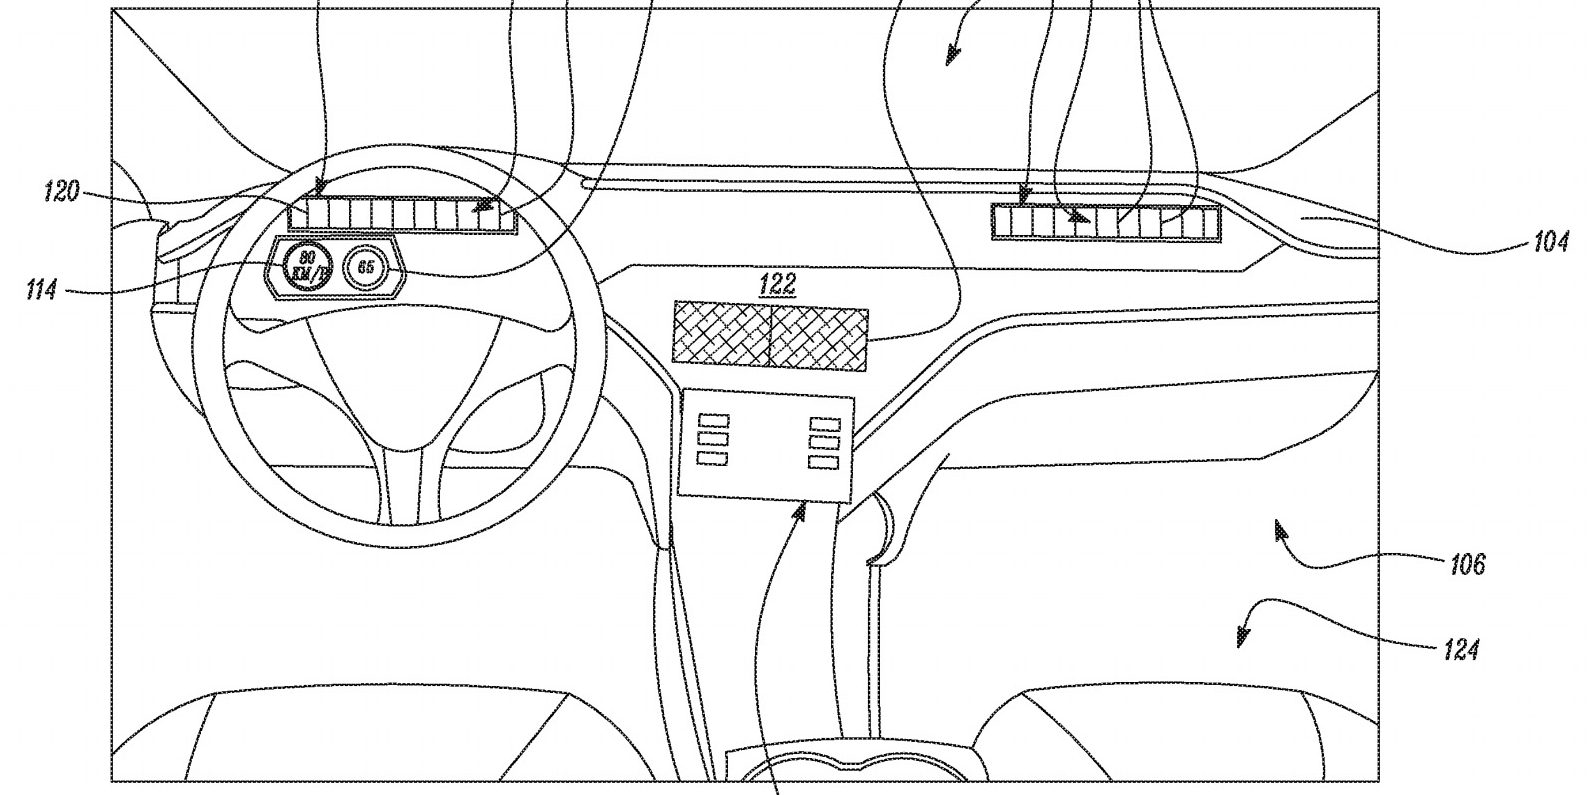 the system appears to work similarly to the model 3's hvac, but with  different vents and the first drawing shows an interior closer to the model  s and model